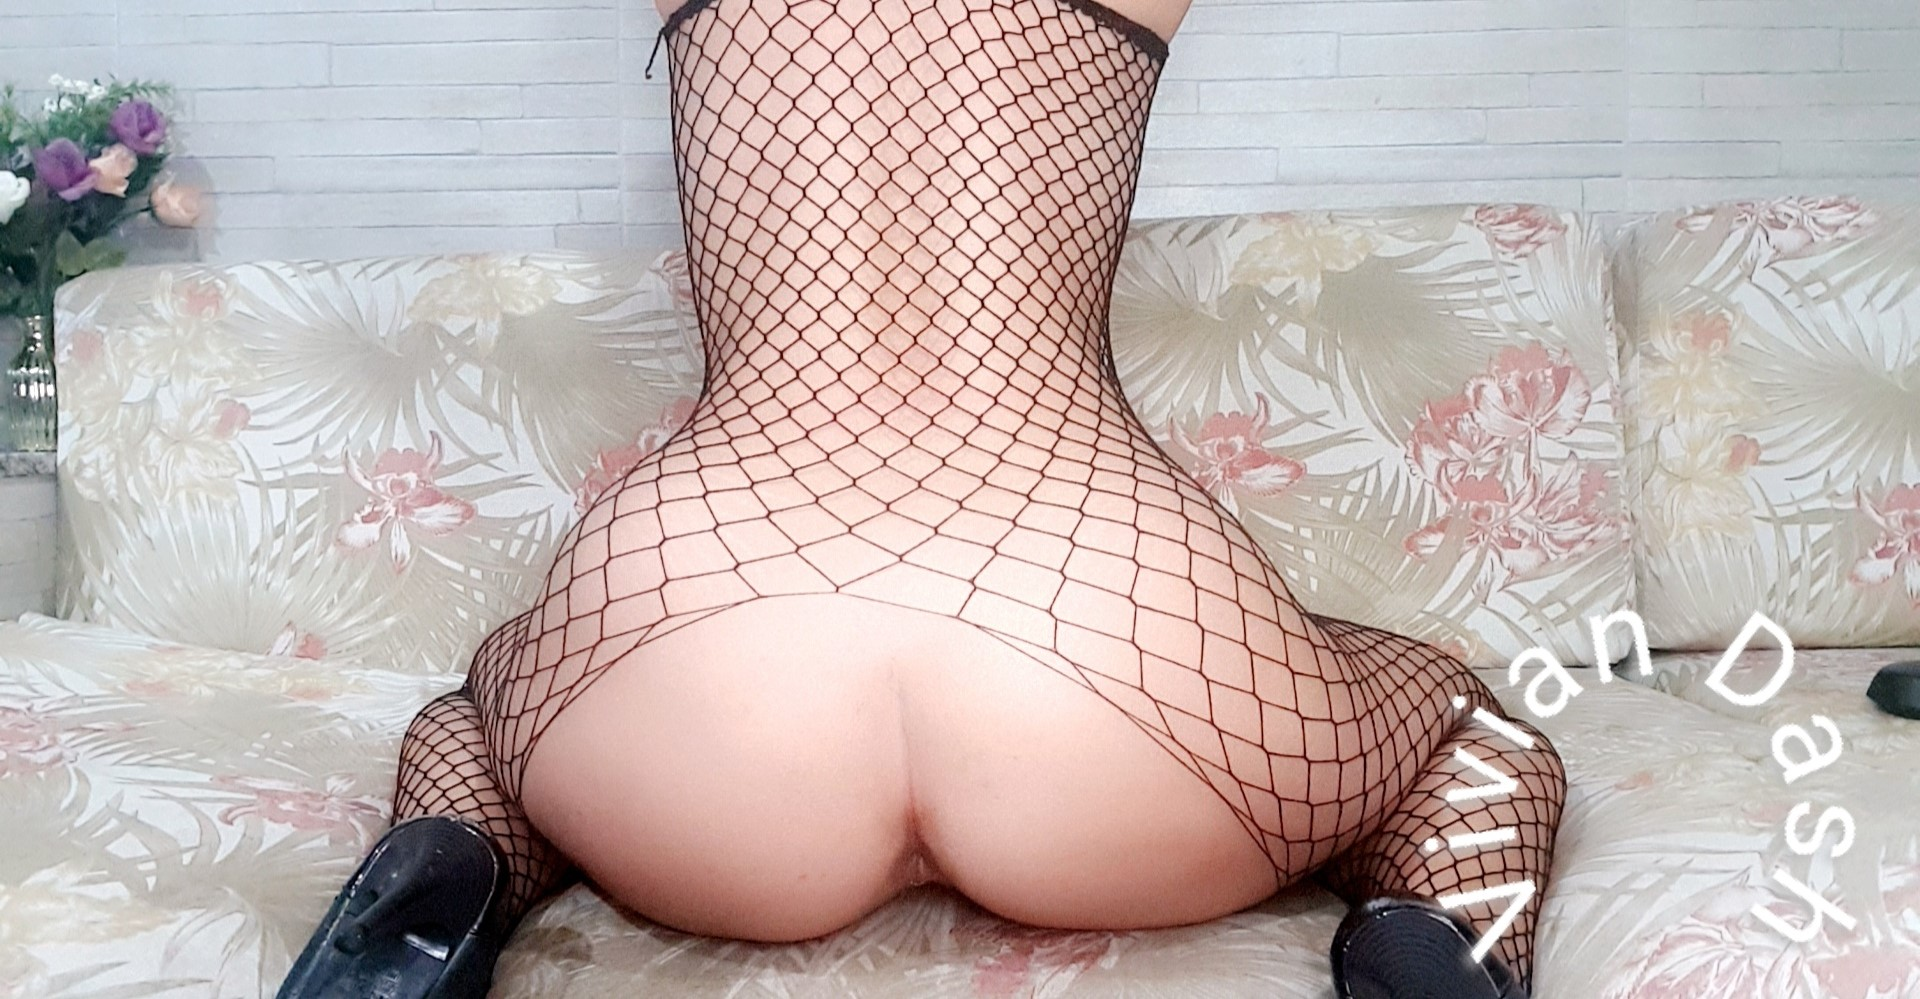 It's So Convenient That This Fishnet Suit Has A Hole For My ASS.